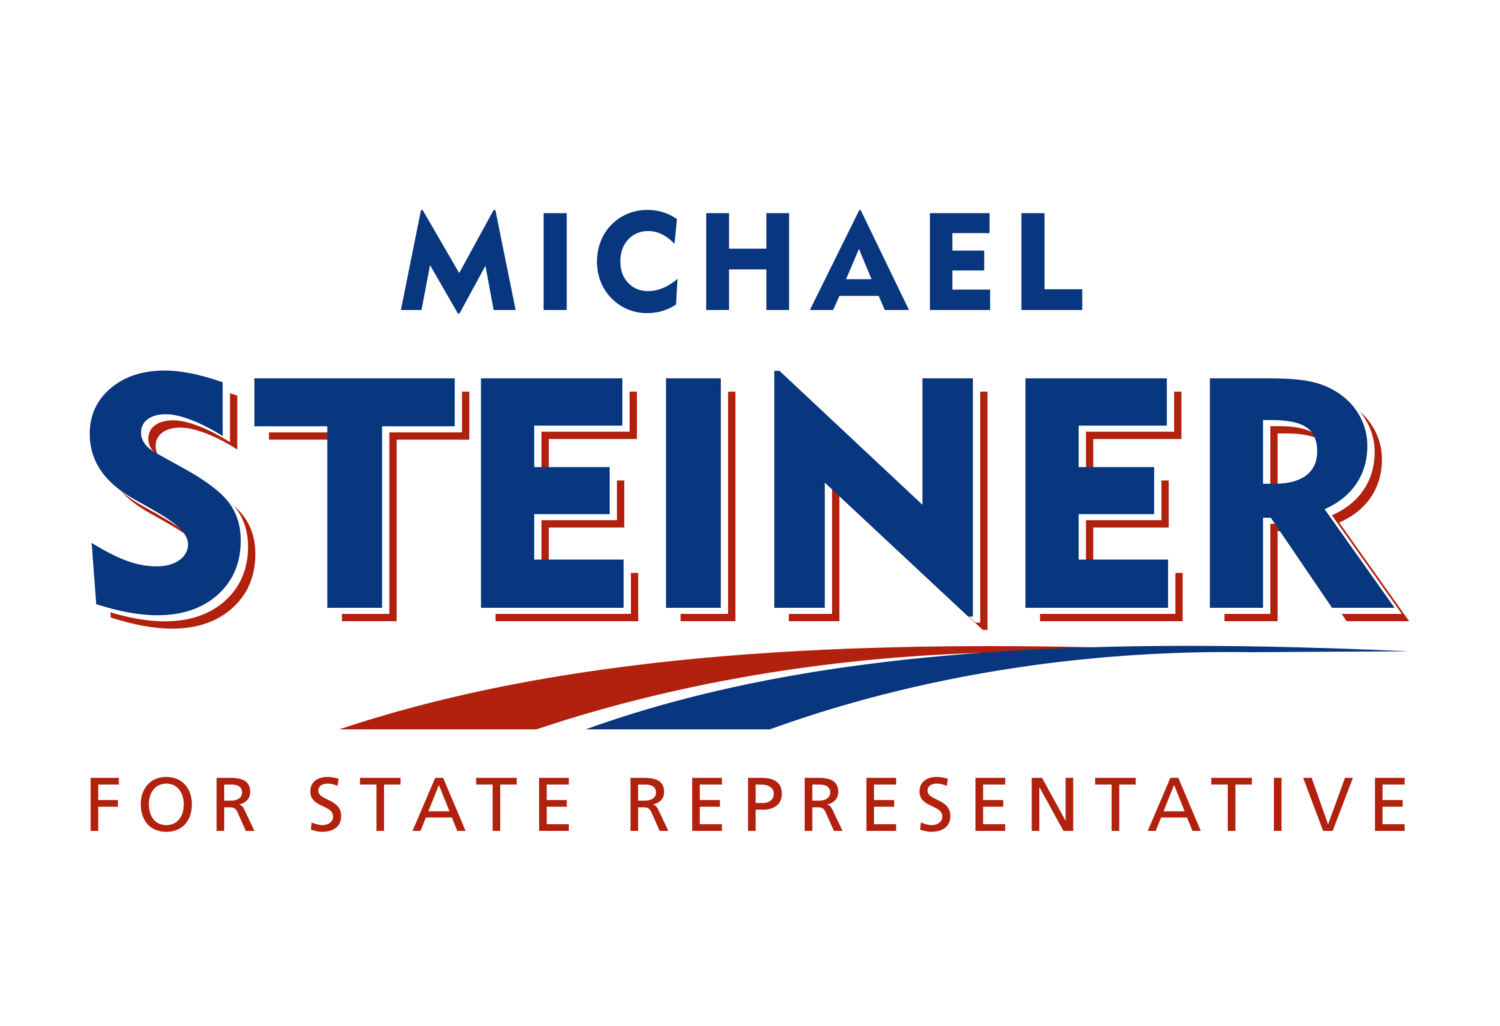 Michael Steiner for State Rep